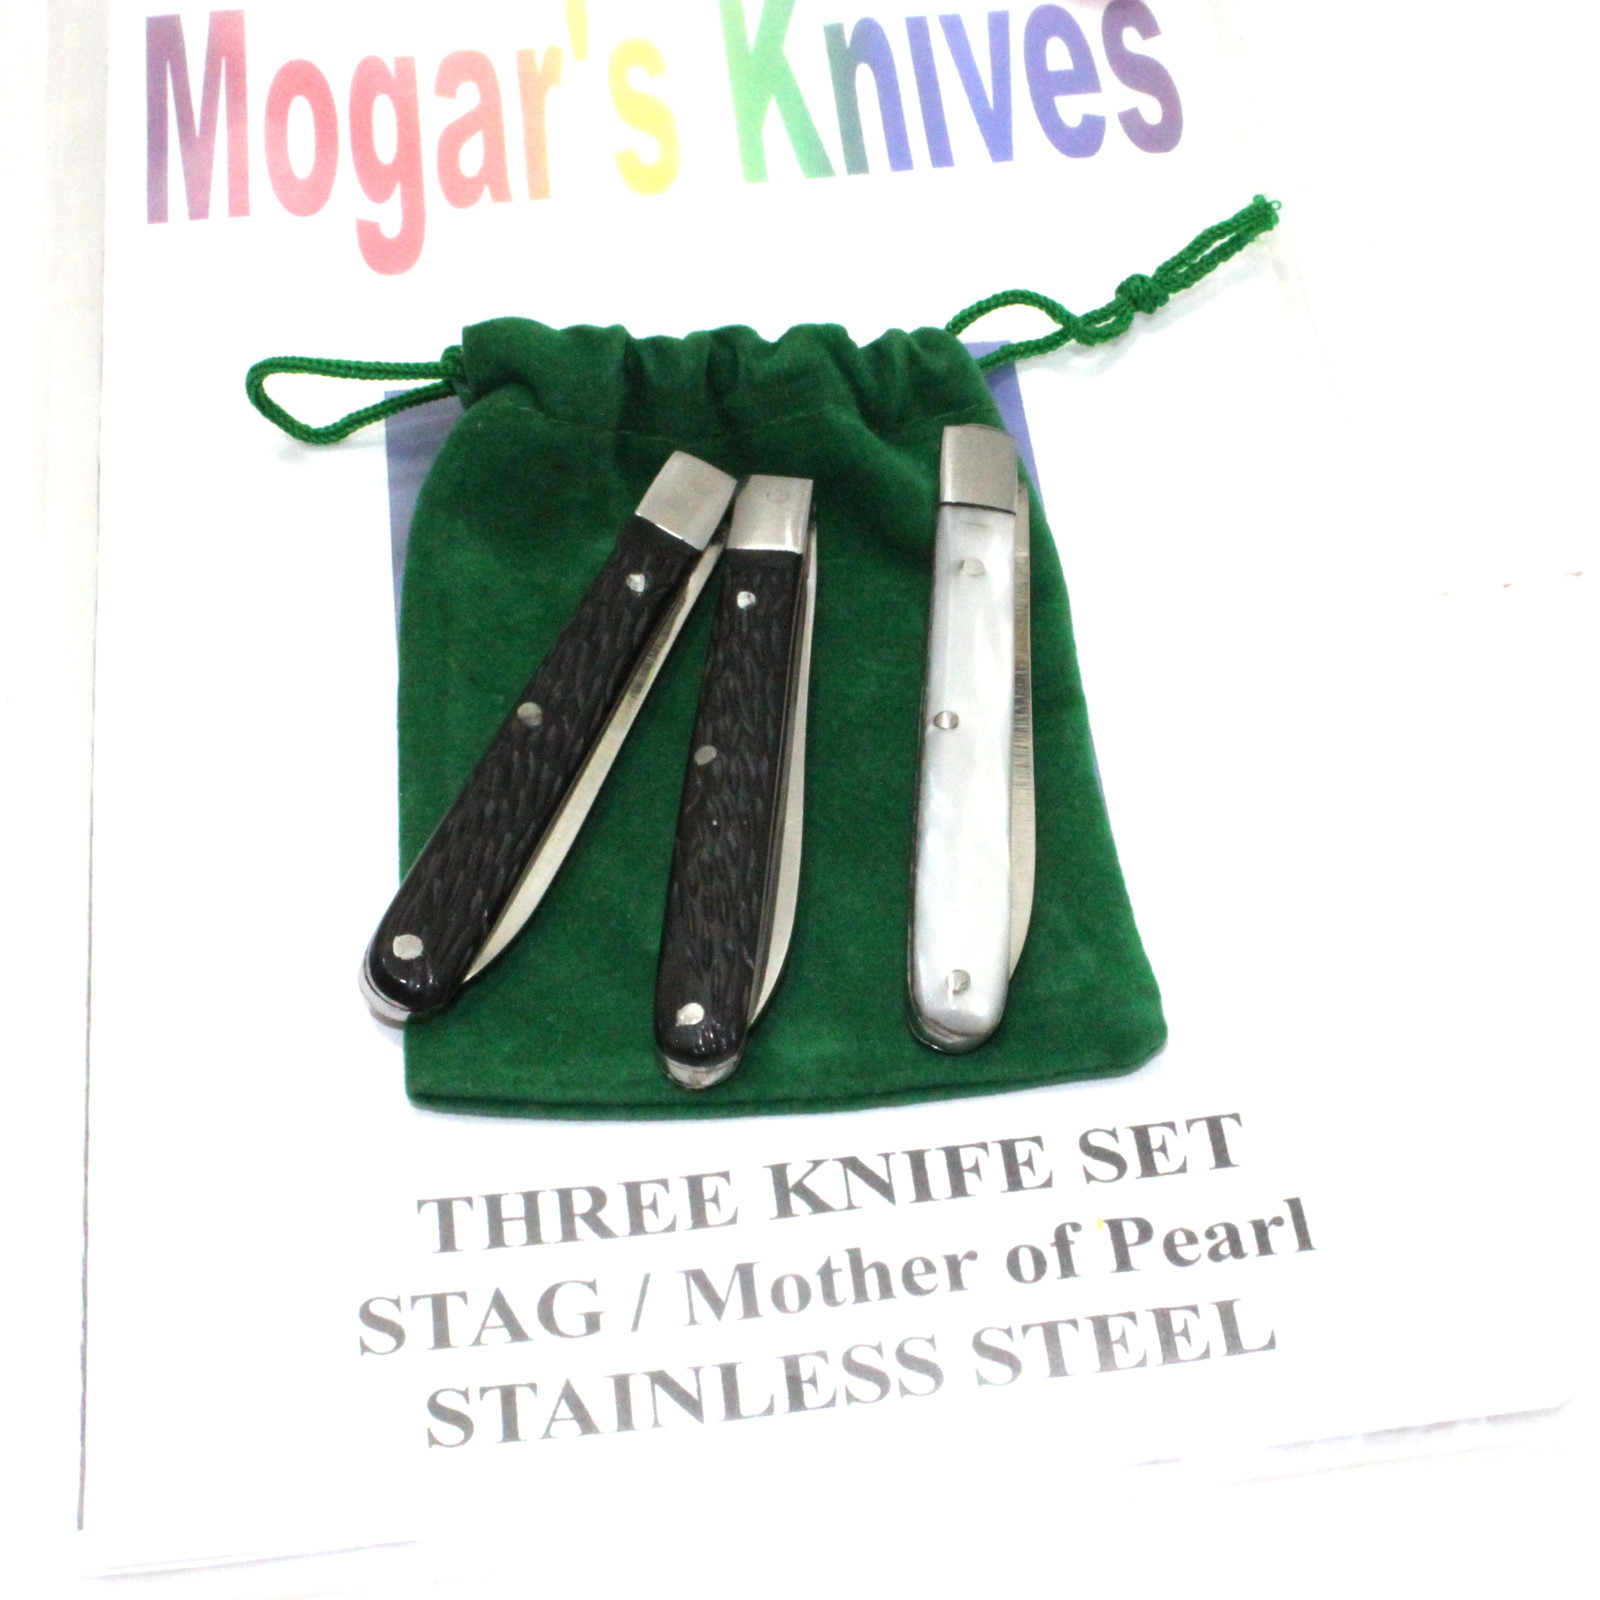 Three Knife Set, Stag and Mother of Pearl in Stainless Steel by Joe Mogar